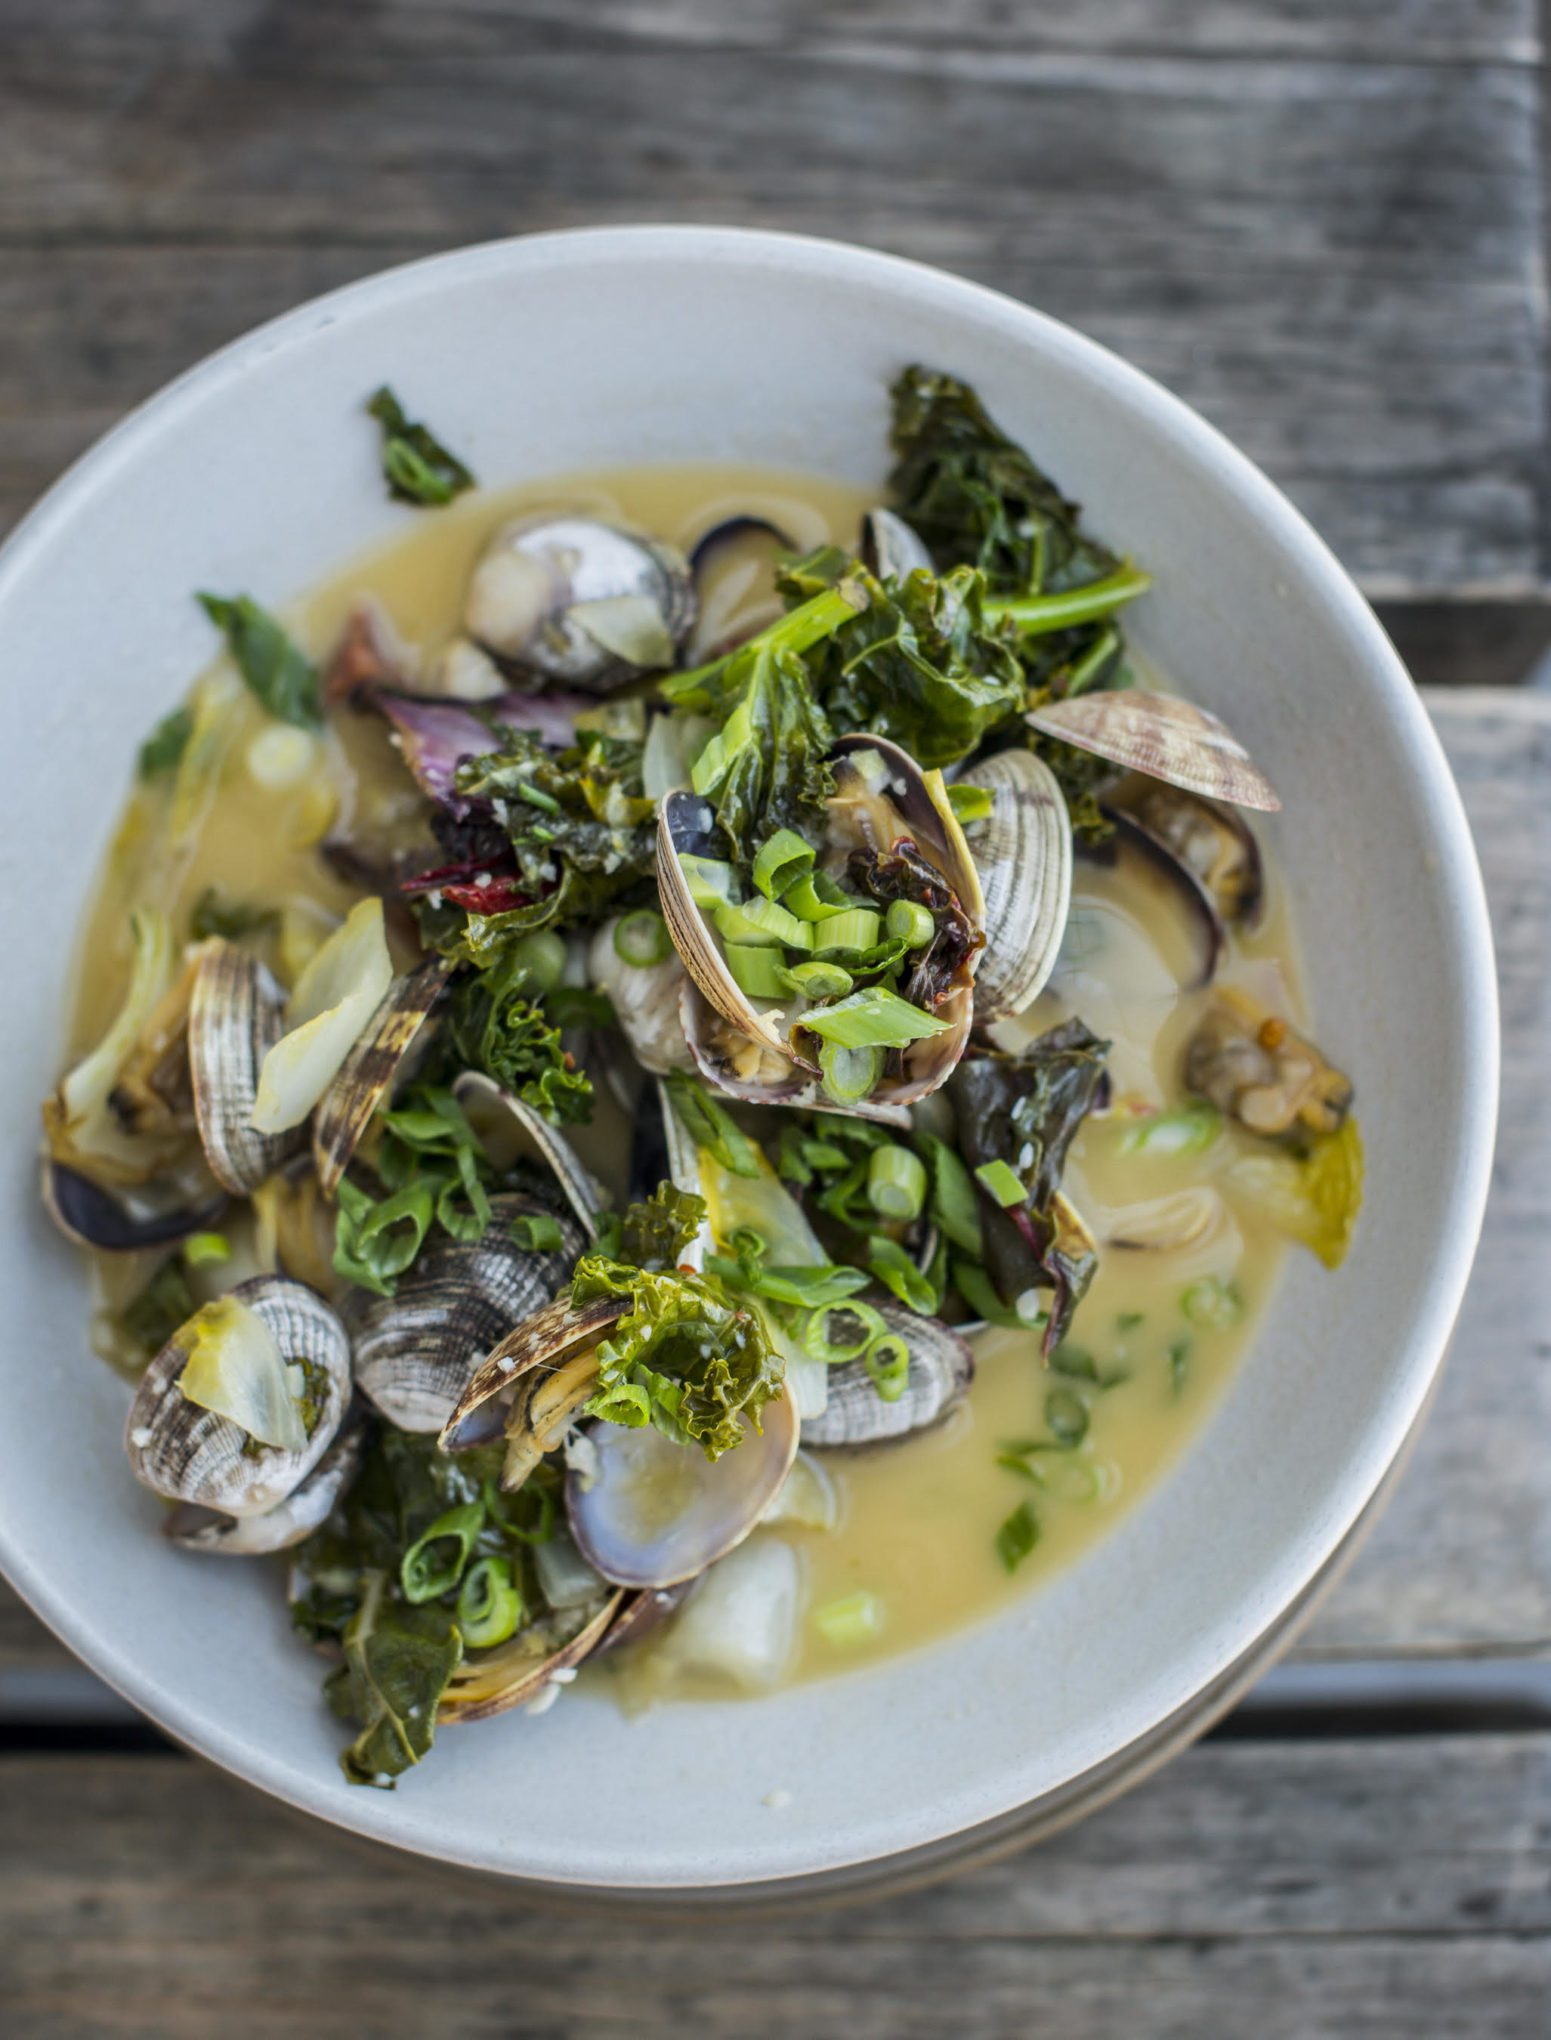 Make Hog Island Oyster Company Steamed Manila Clams with Spanish Chorizo Recipe